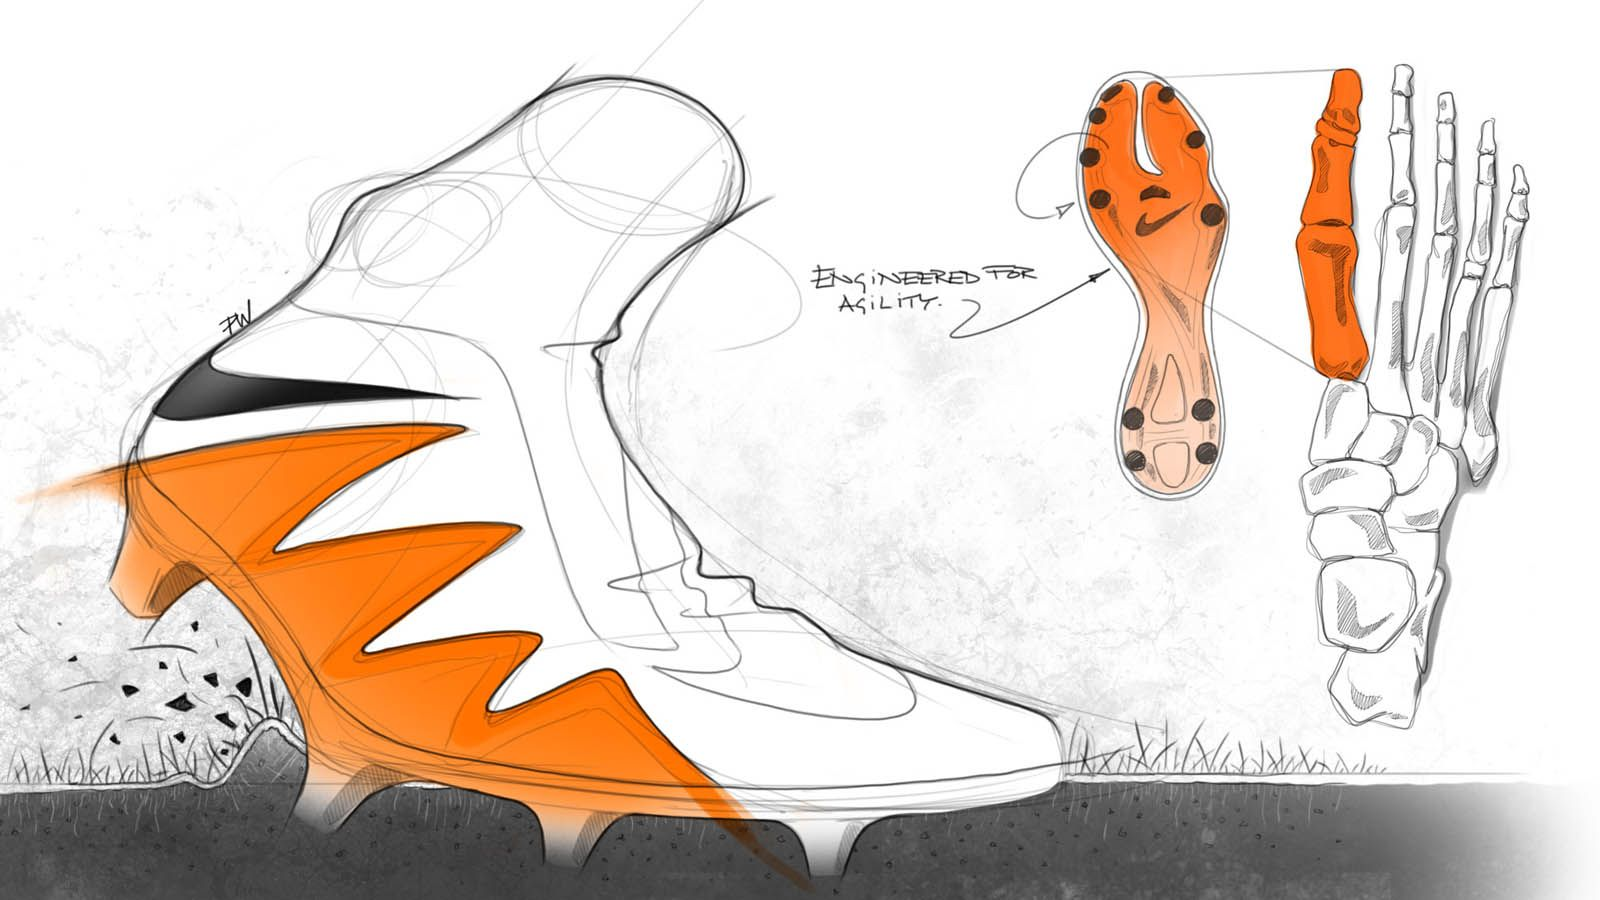 Boot design by nike - The Nike Hypervenom Phantom 2 Design Sketches Provide Unique Insights Into The Development Tech Features